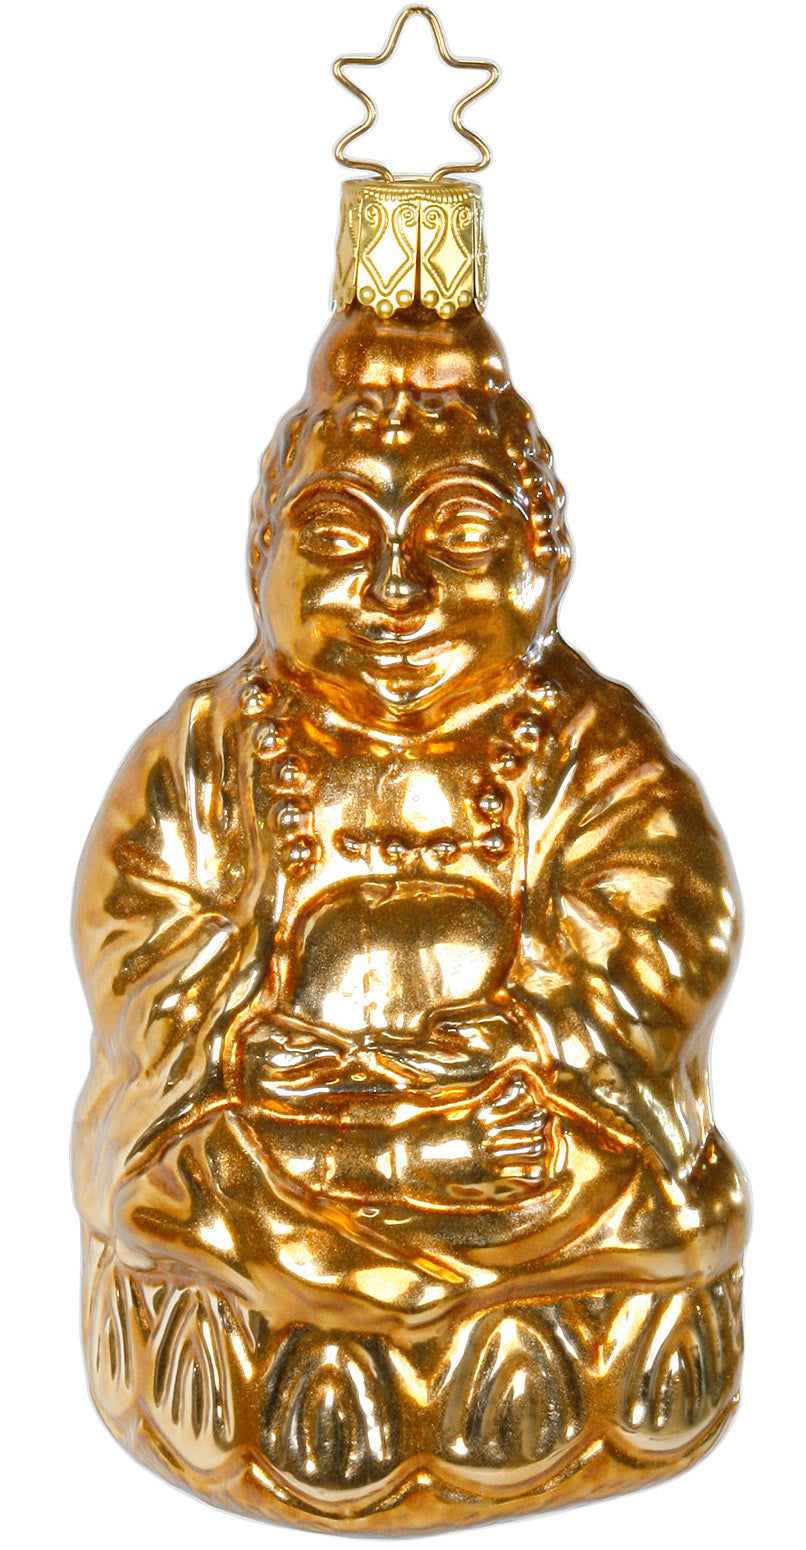 Enlightened Buddha Ornament